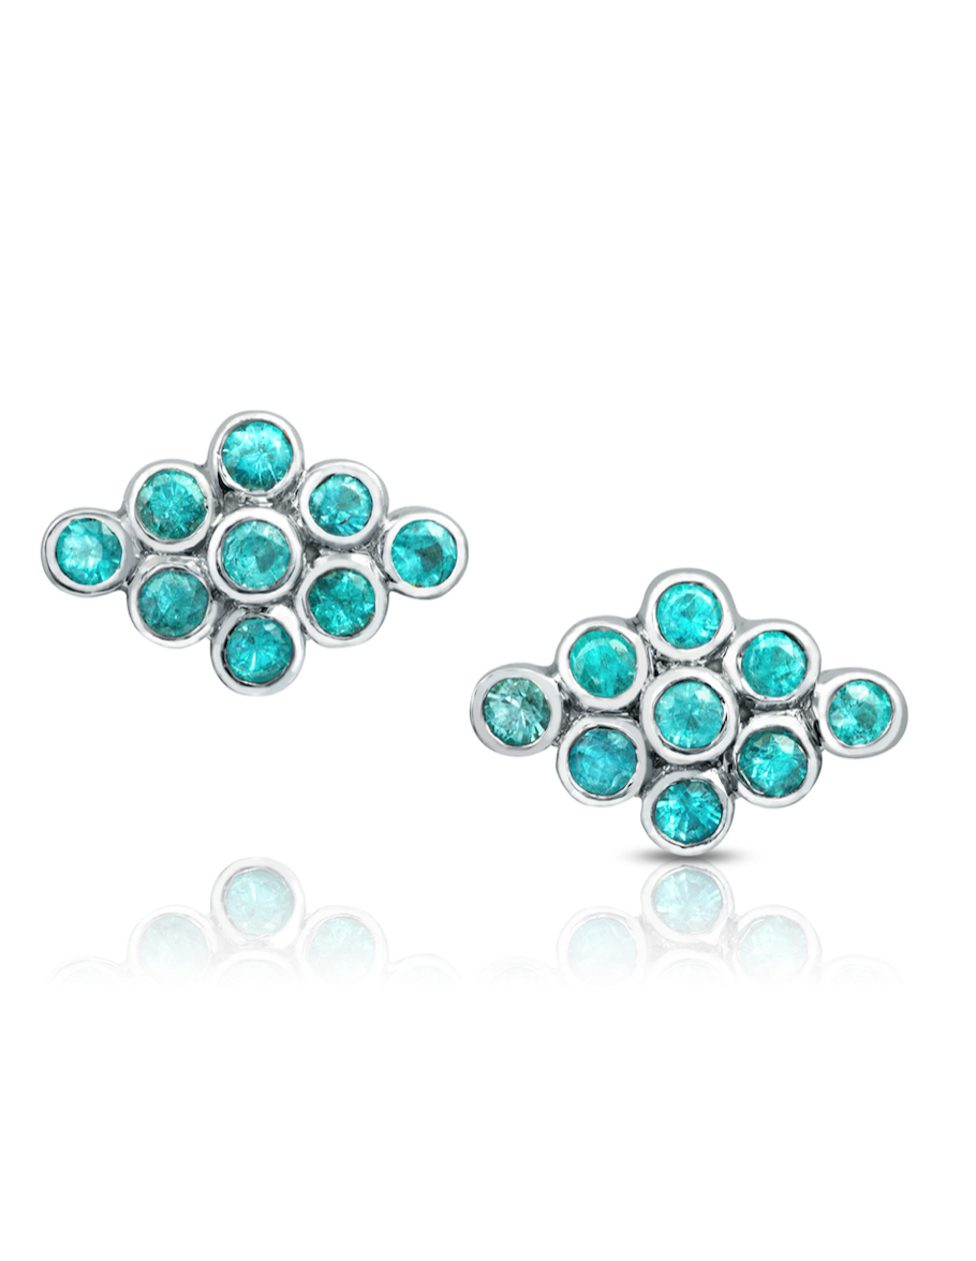 gem trends - reversible opal earrings, studs